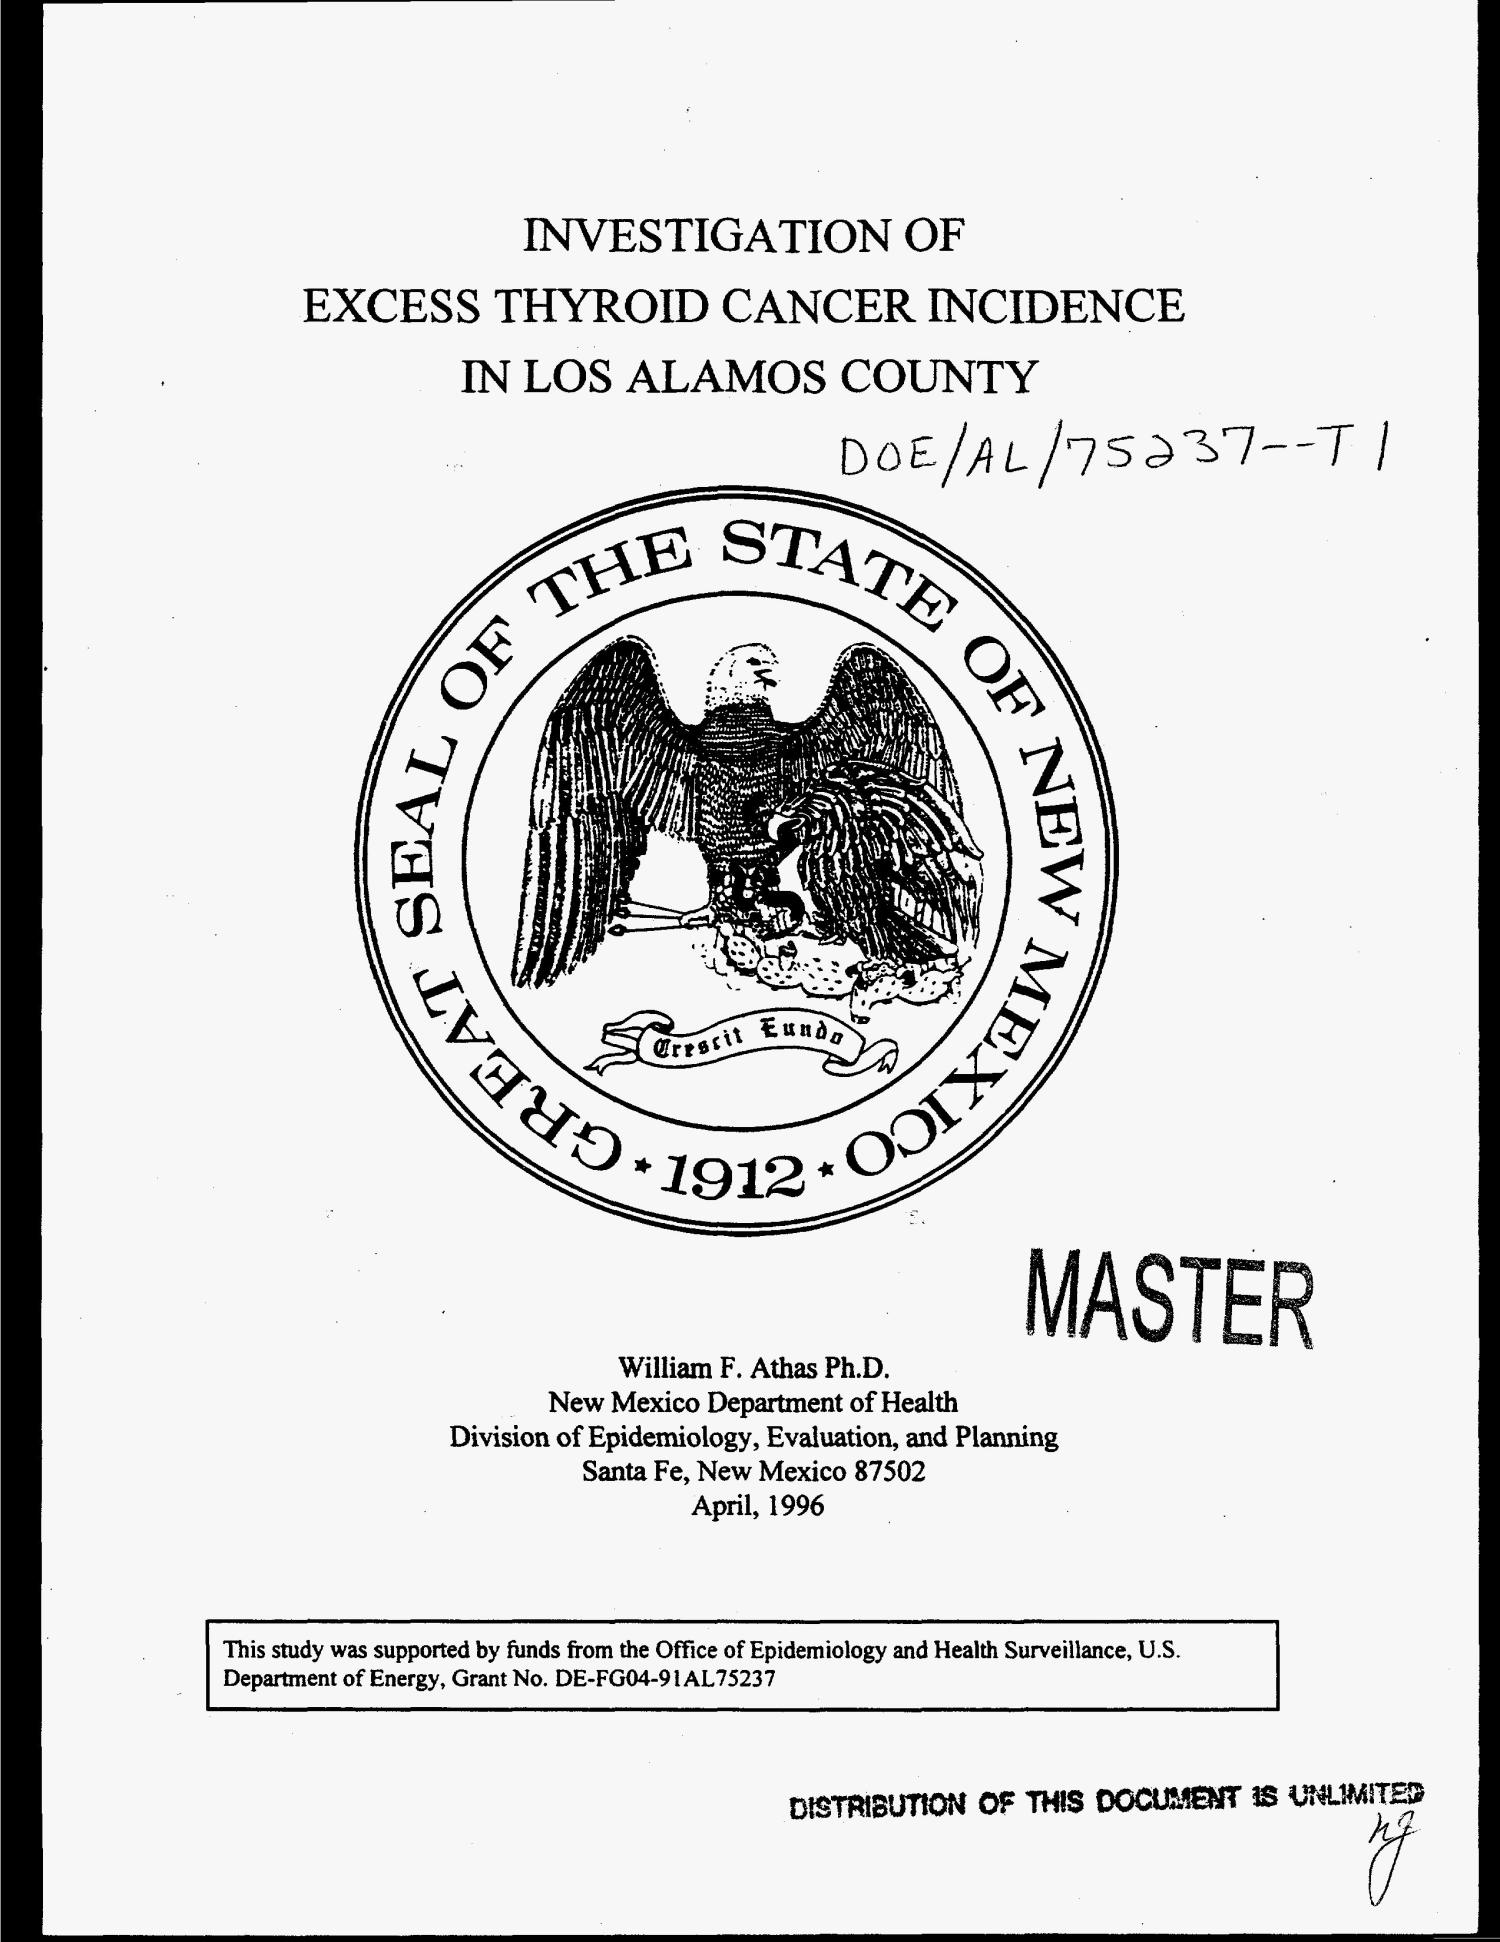 investigation of excess thyroid cancer incidence in los alamos NIH Email investigation of excess thyroid cancer incidence in los alamos county digital library